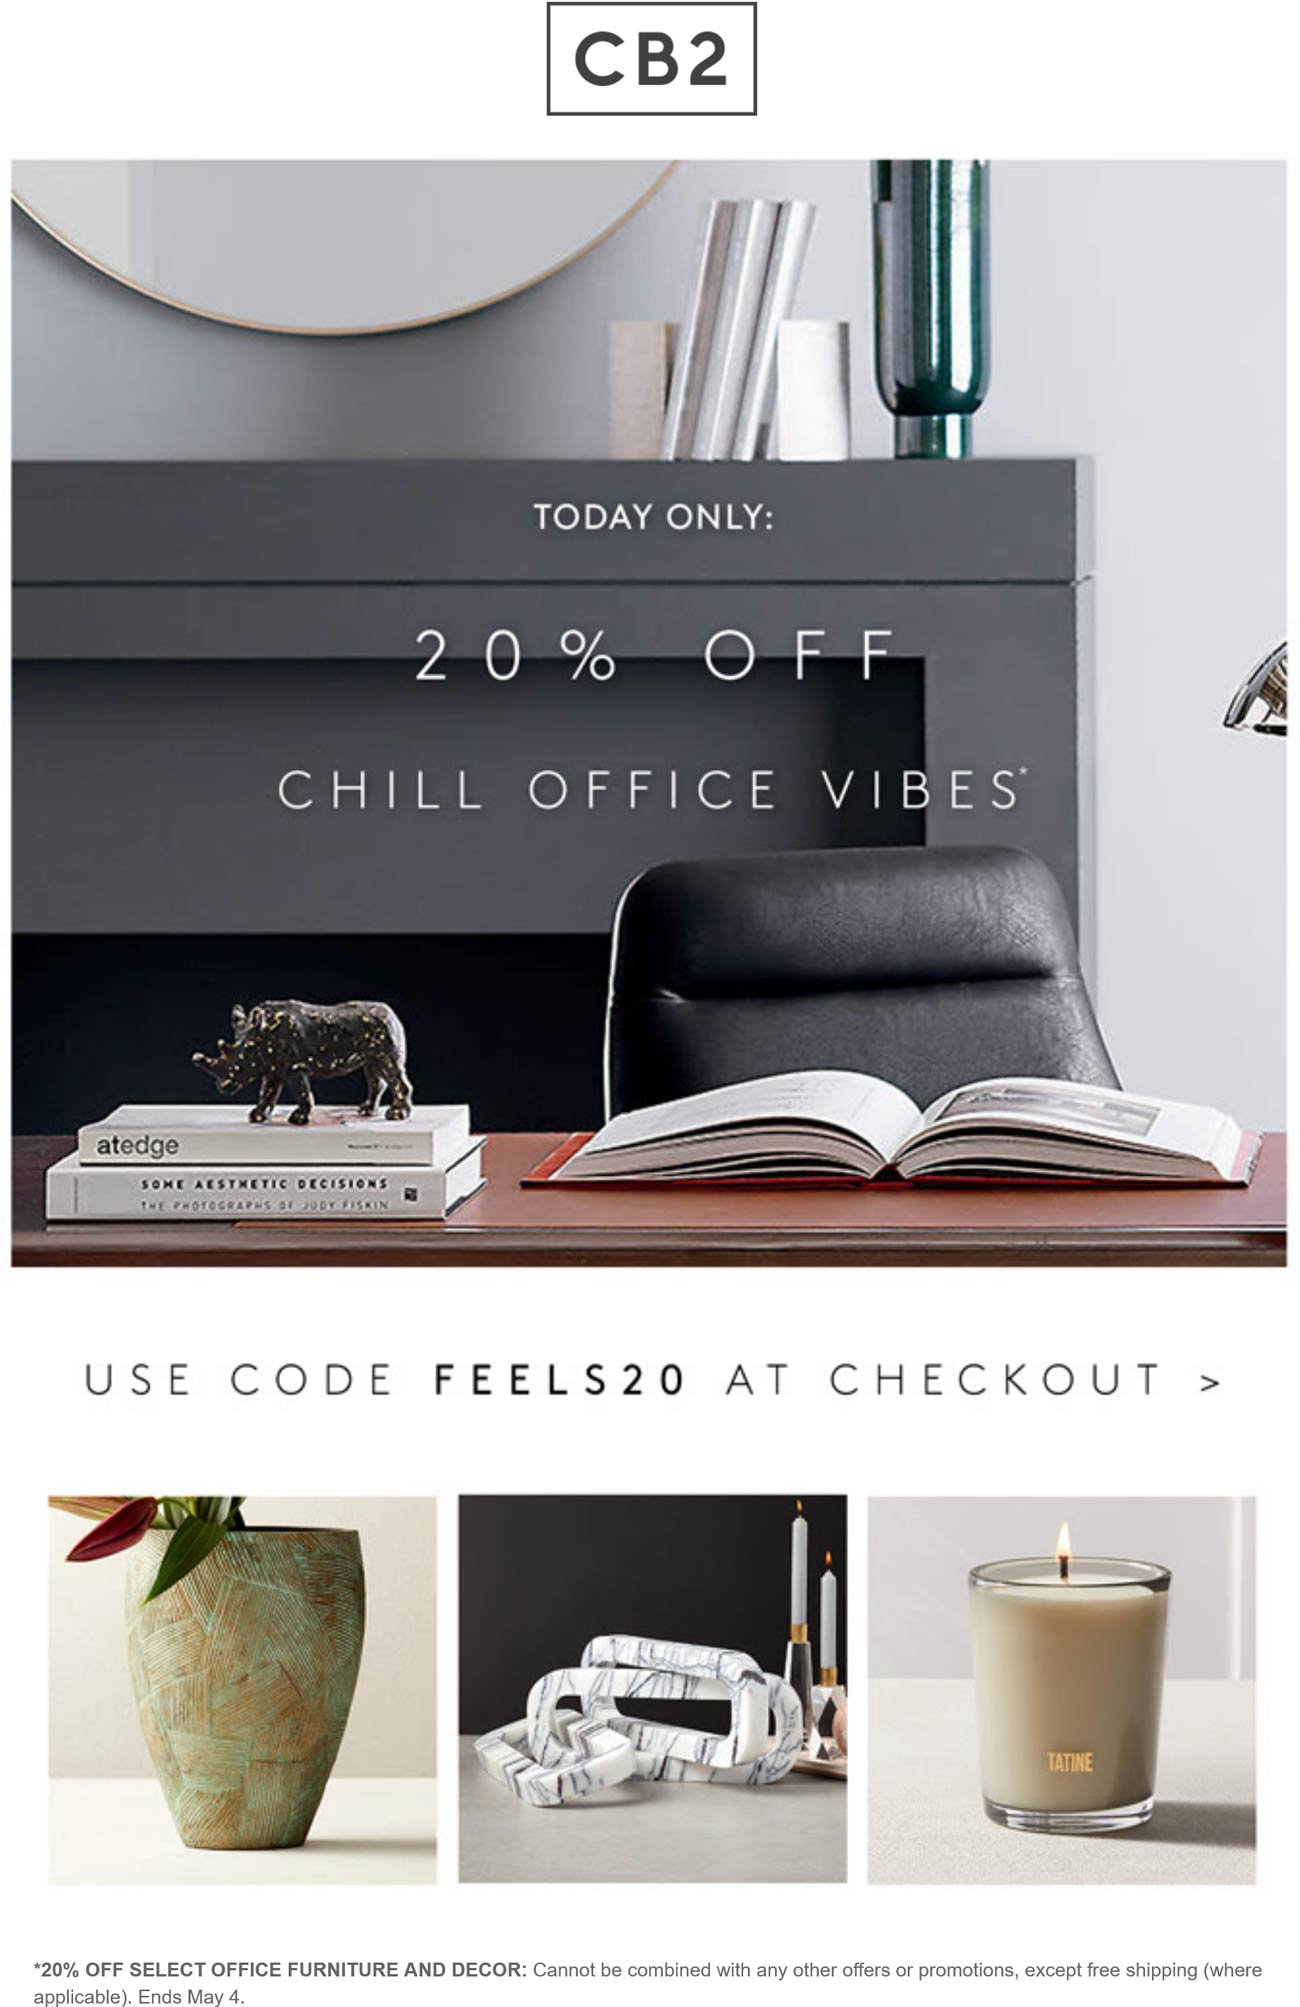 CB2 stores Coupon  20% off office decor & furniture today at Crate & Barrel CB2 via promo code FEELS20 #cb2